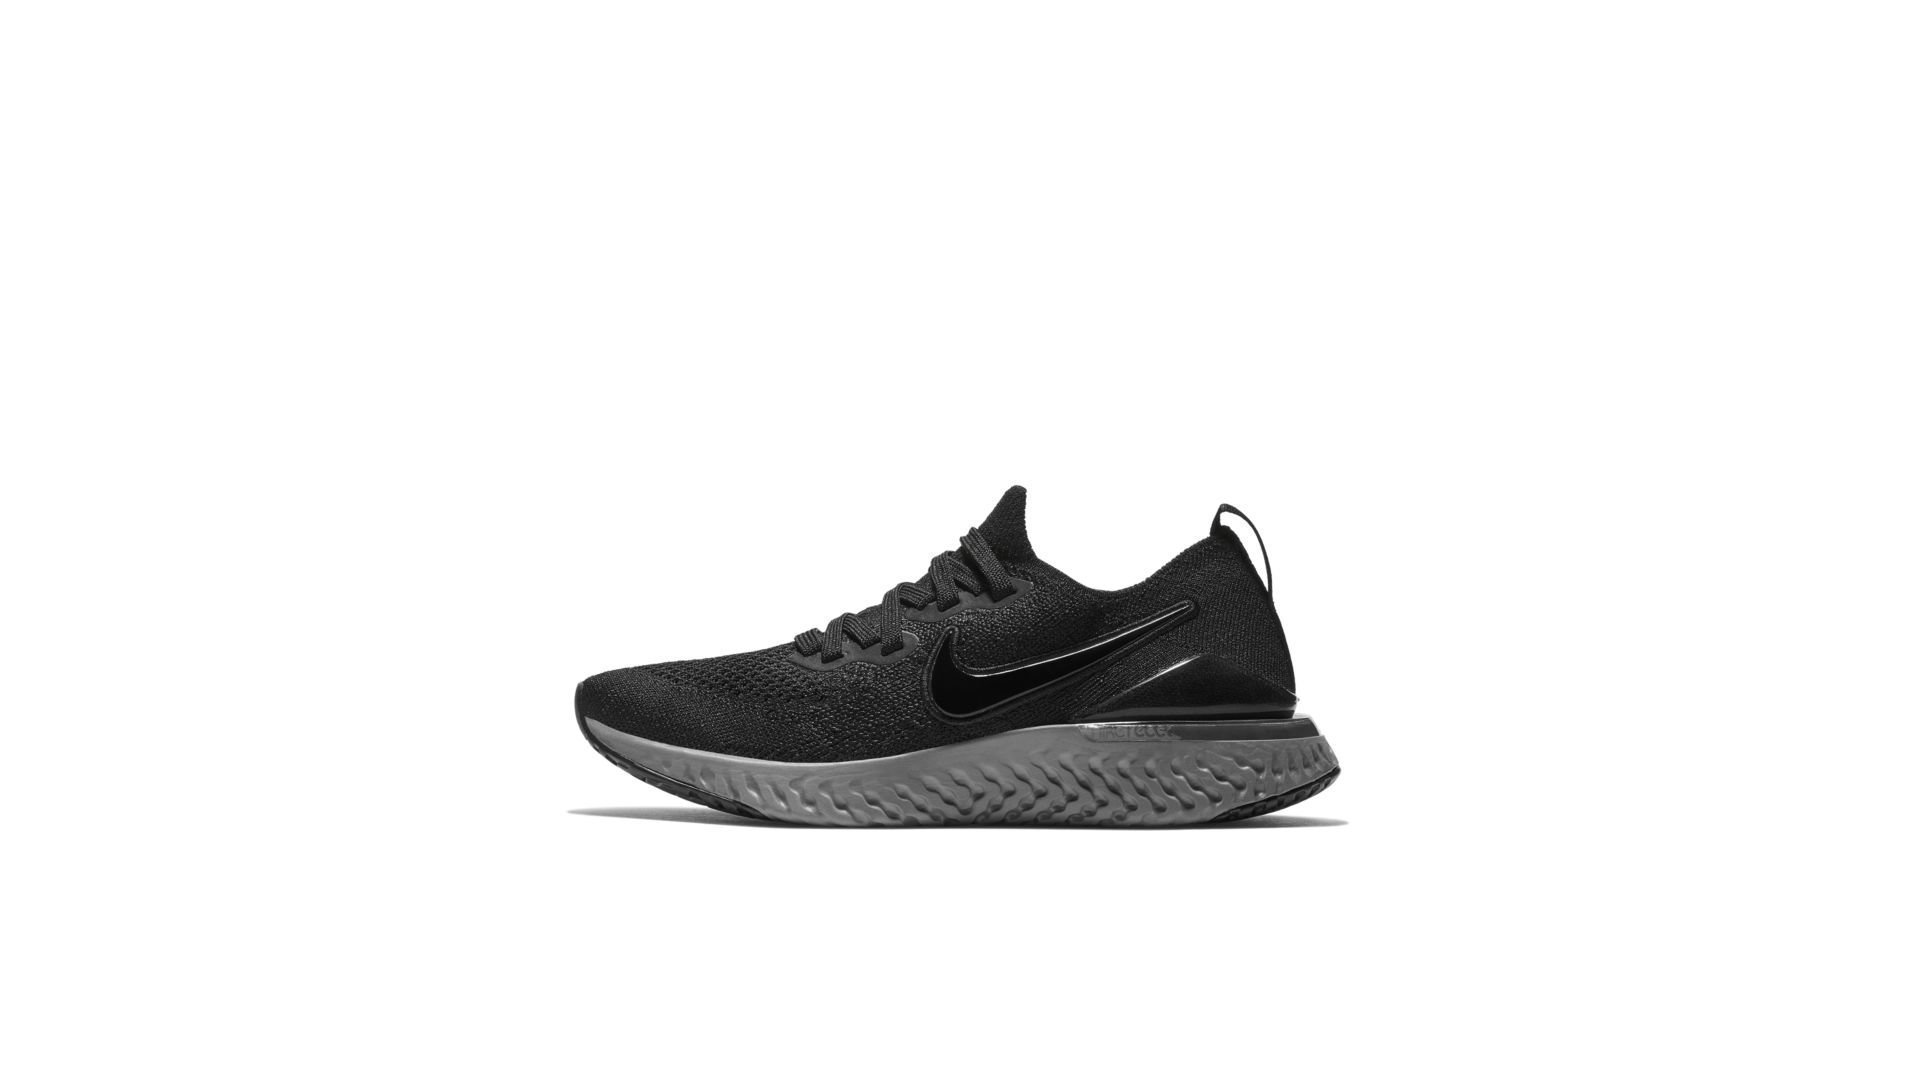 Nike Epic React Flyknit 2 Black Anthracite (GS) (AQ3243-002)